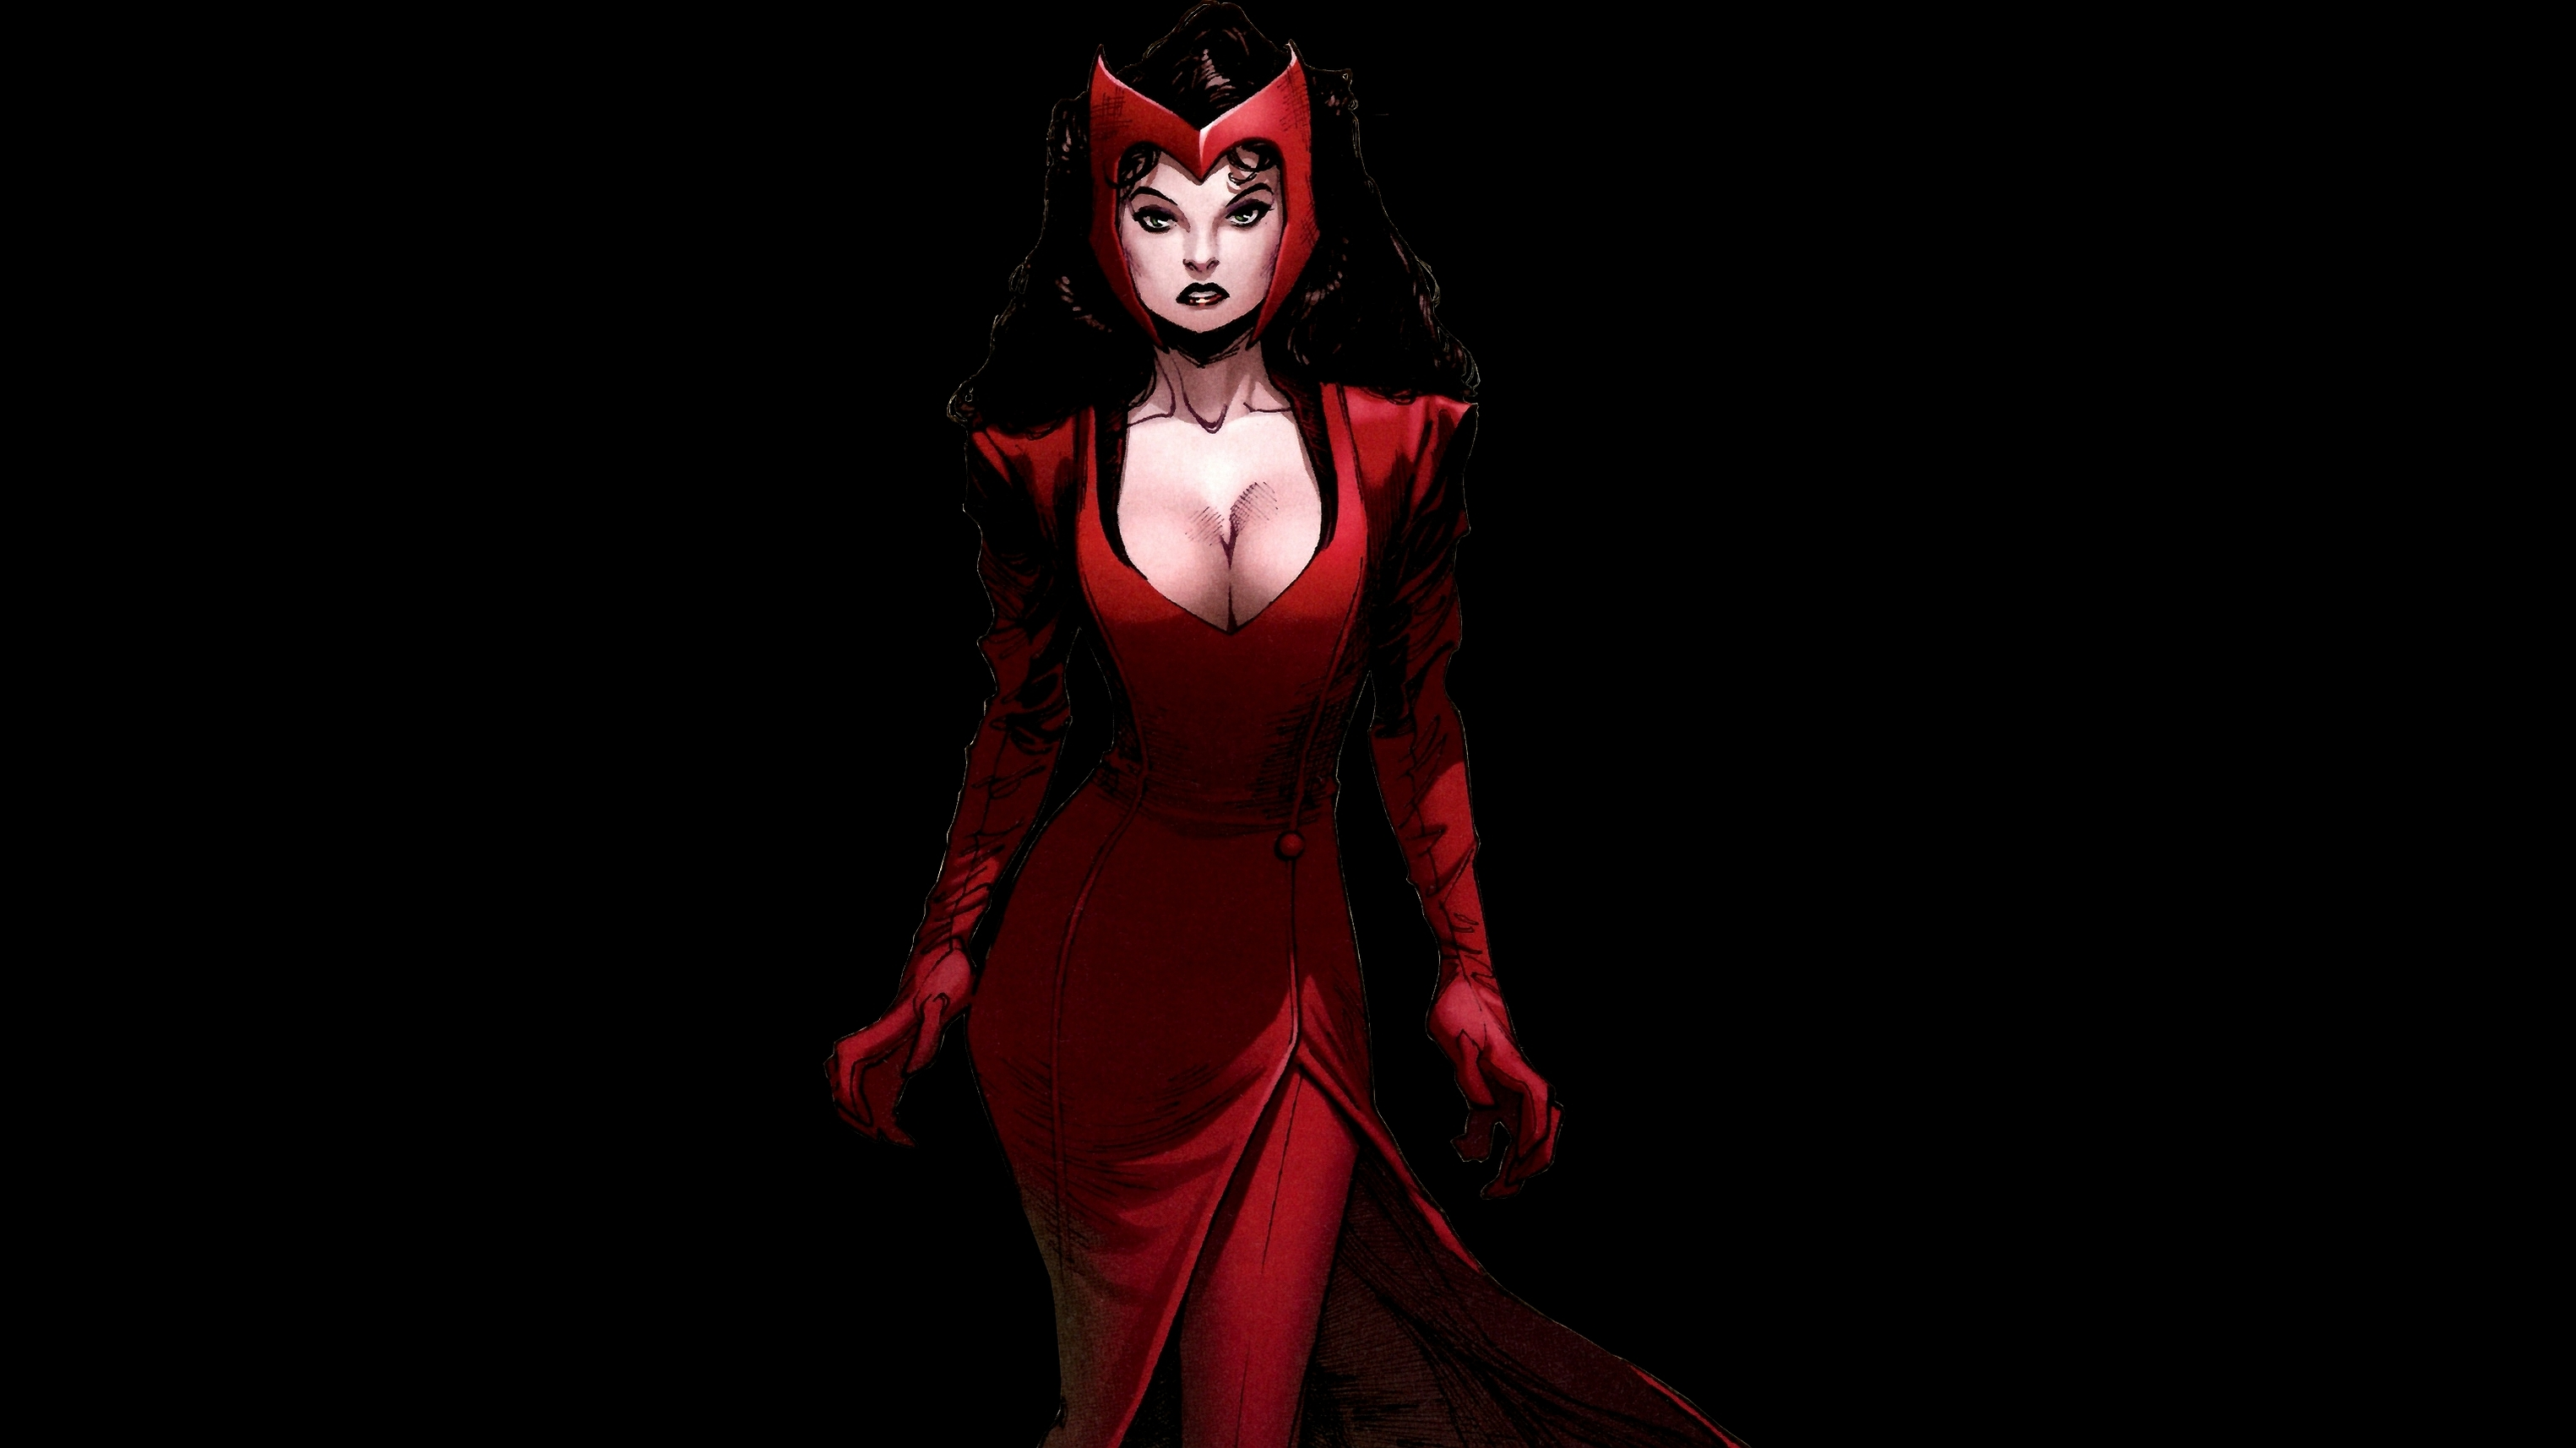 Cute Rose Wallpaper For Computer Desktop Download Scarlet Witch Wallpaper Gallery